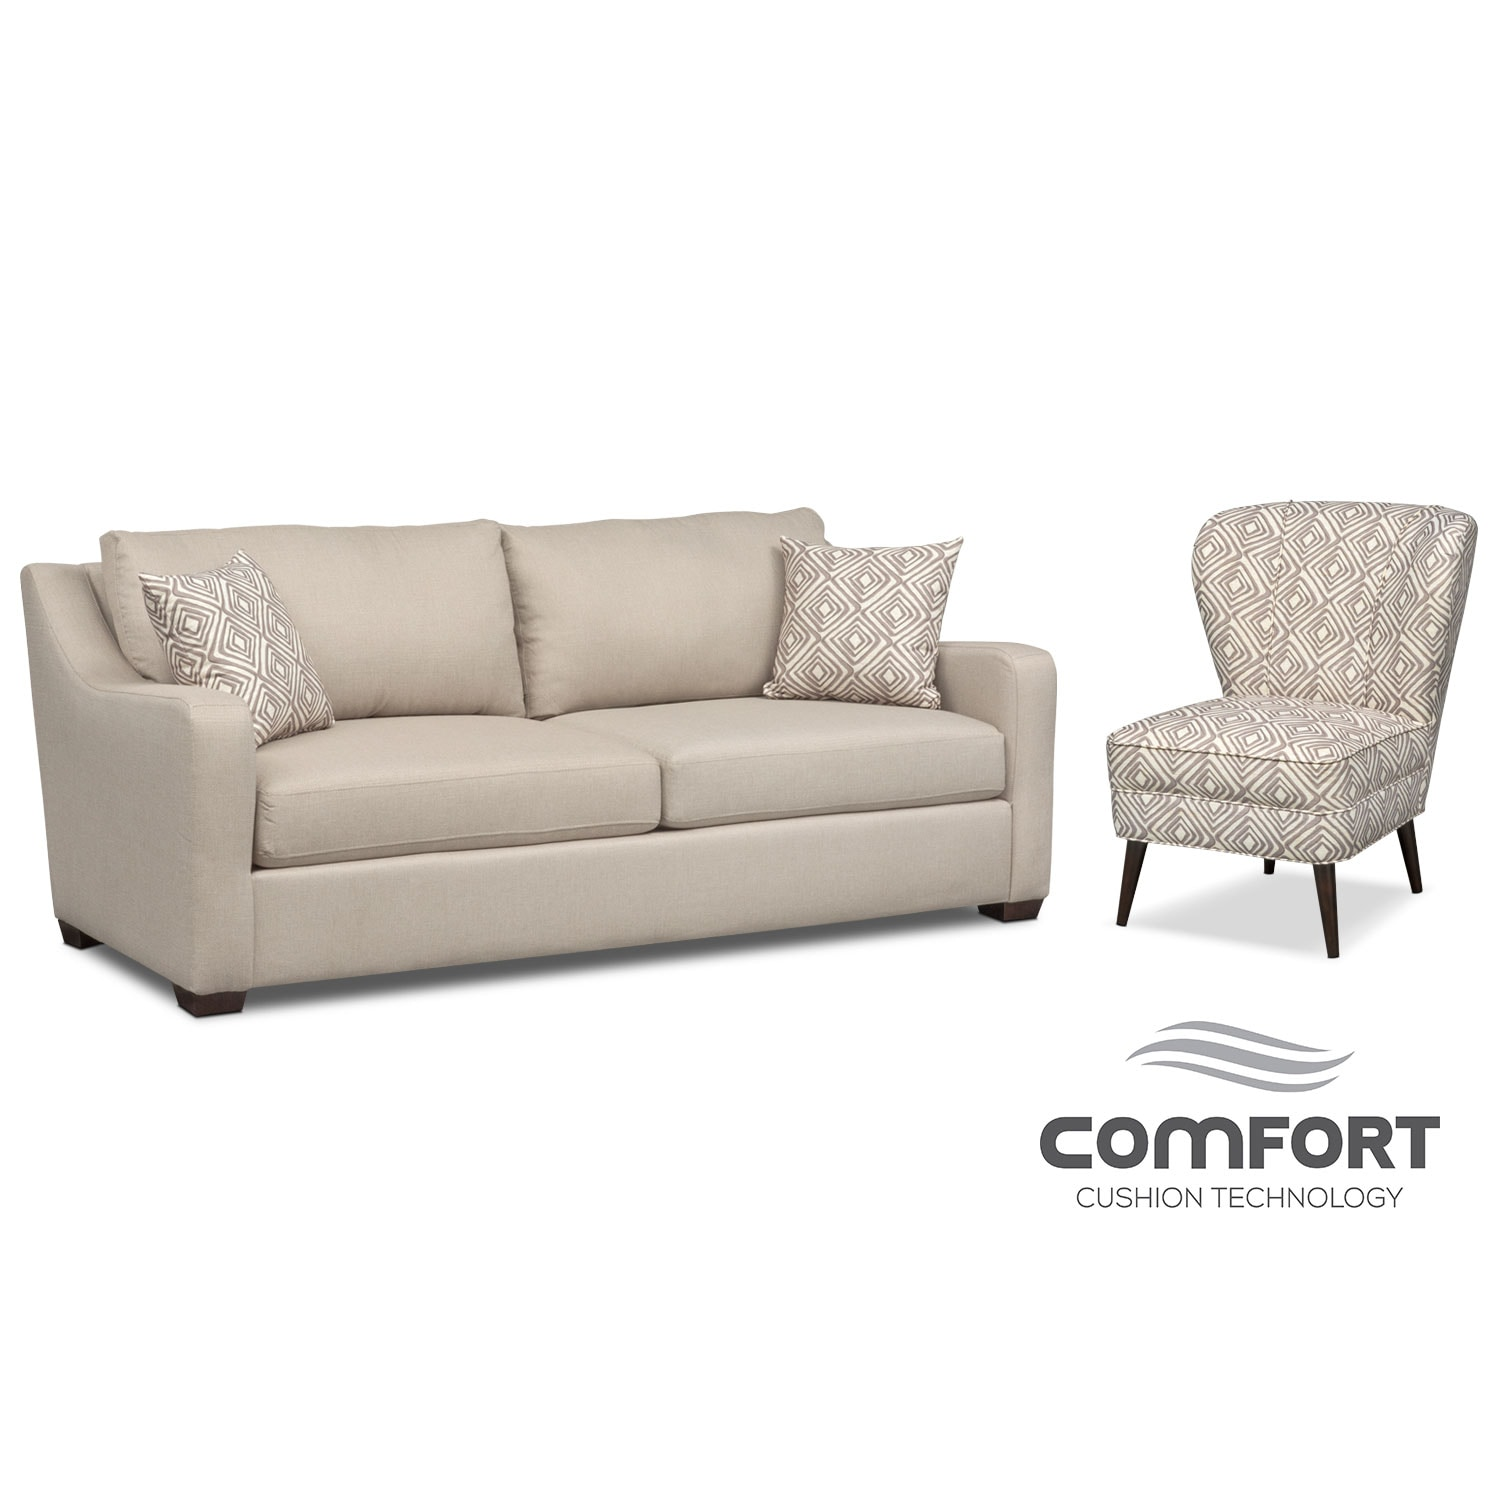 Jules Comfort Sofa and Accent Chair Set - Cream